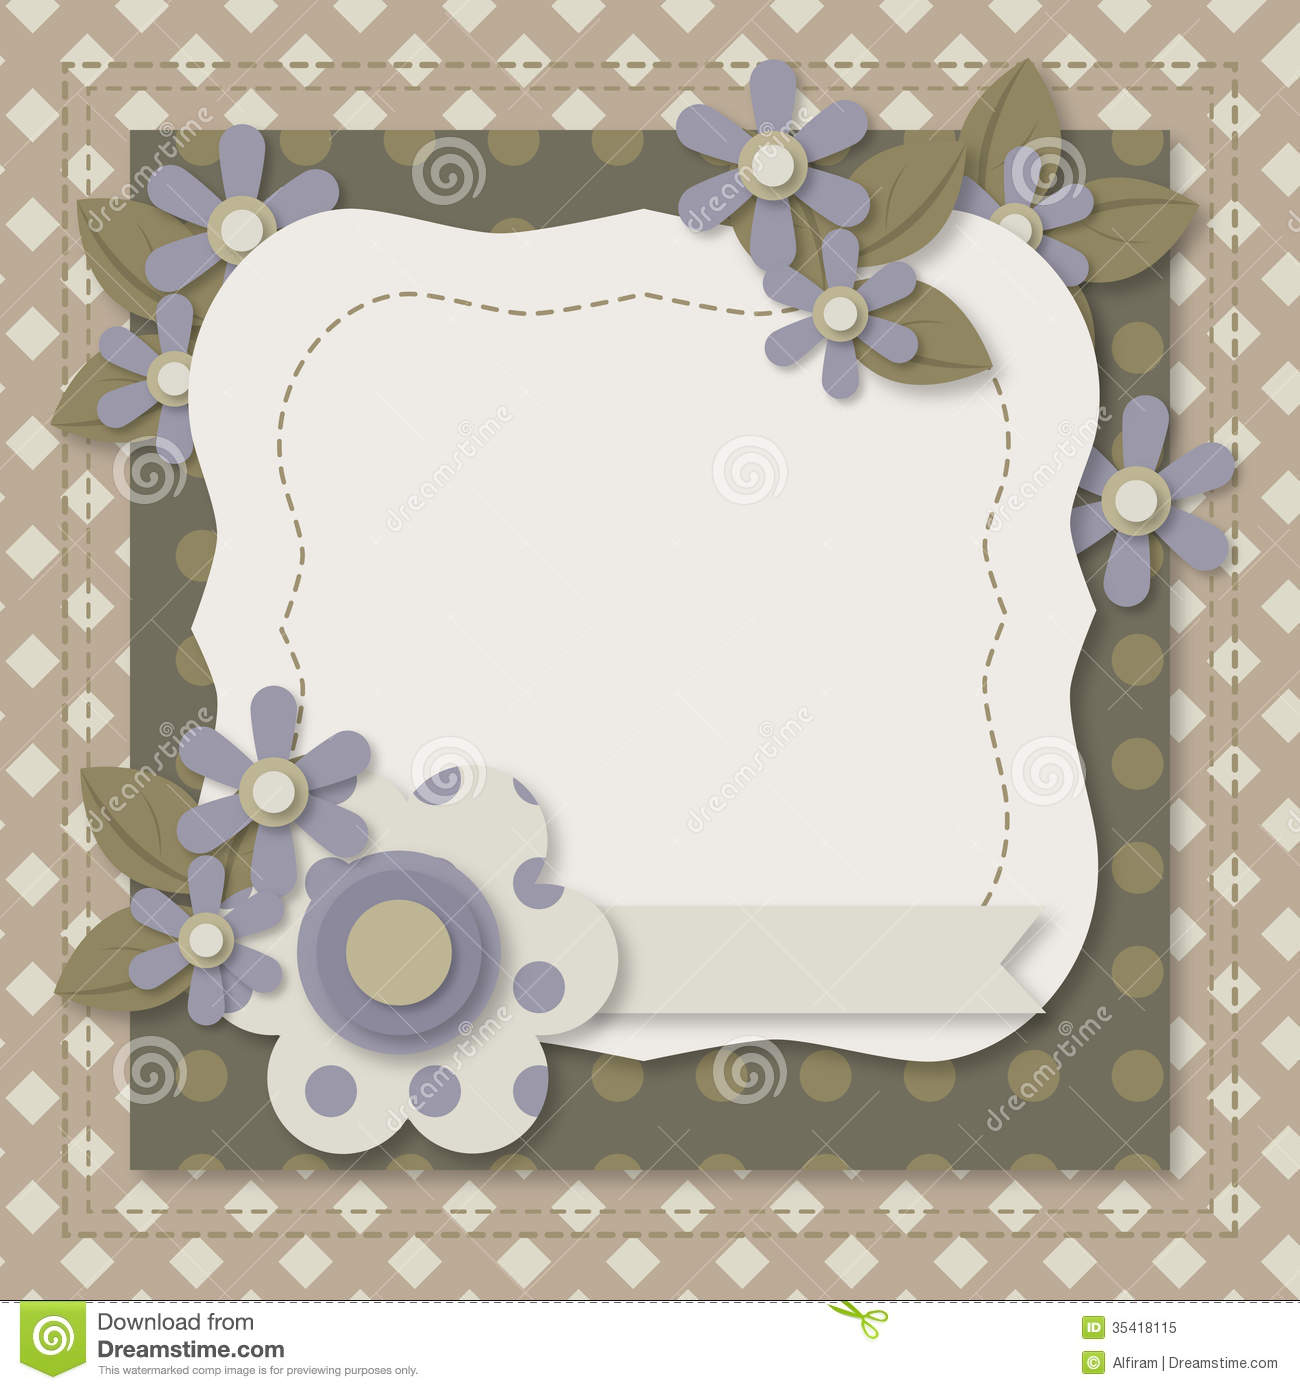 Template Greeting Card Royalty Free Stock Image: Template Of Greeting Card Or Album Page Royalty Free Stock